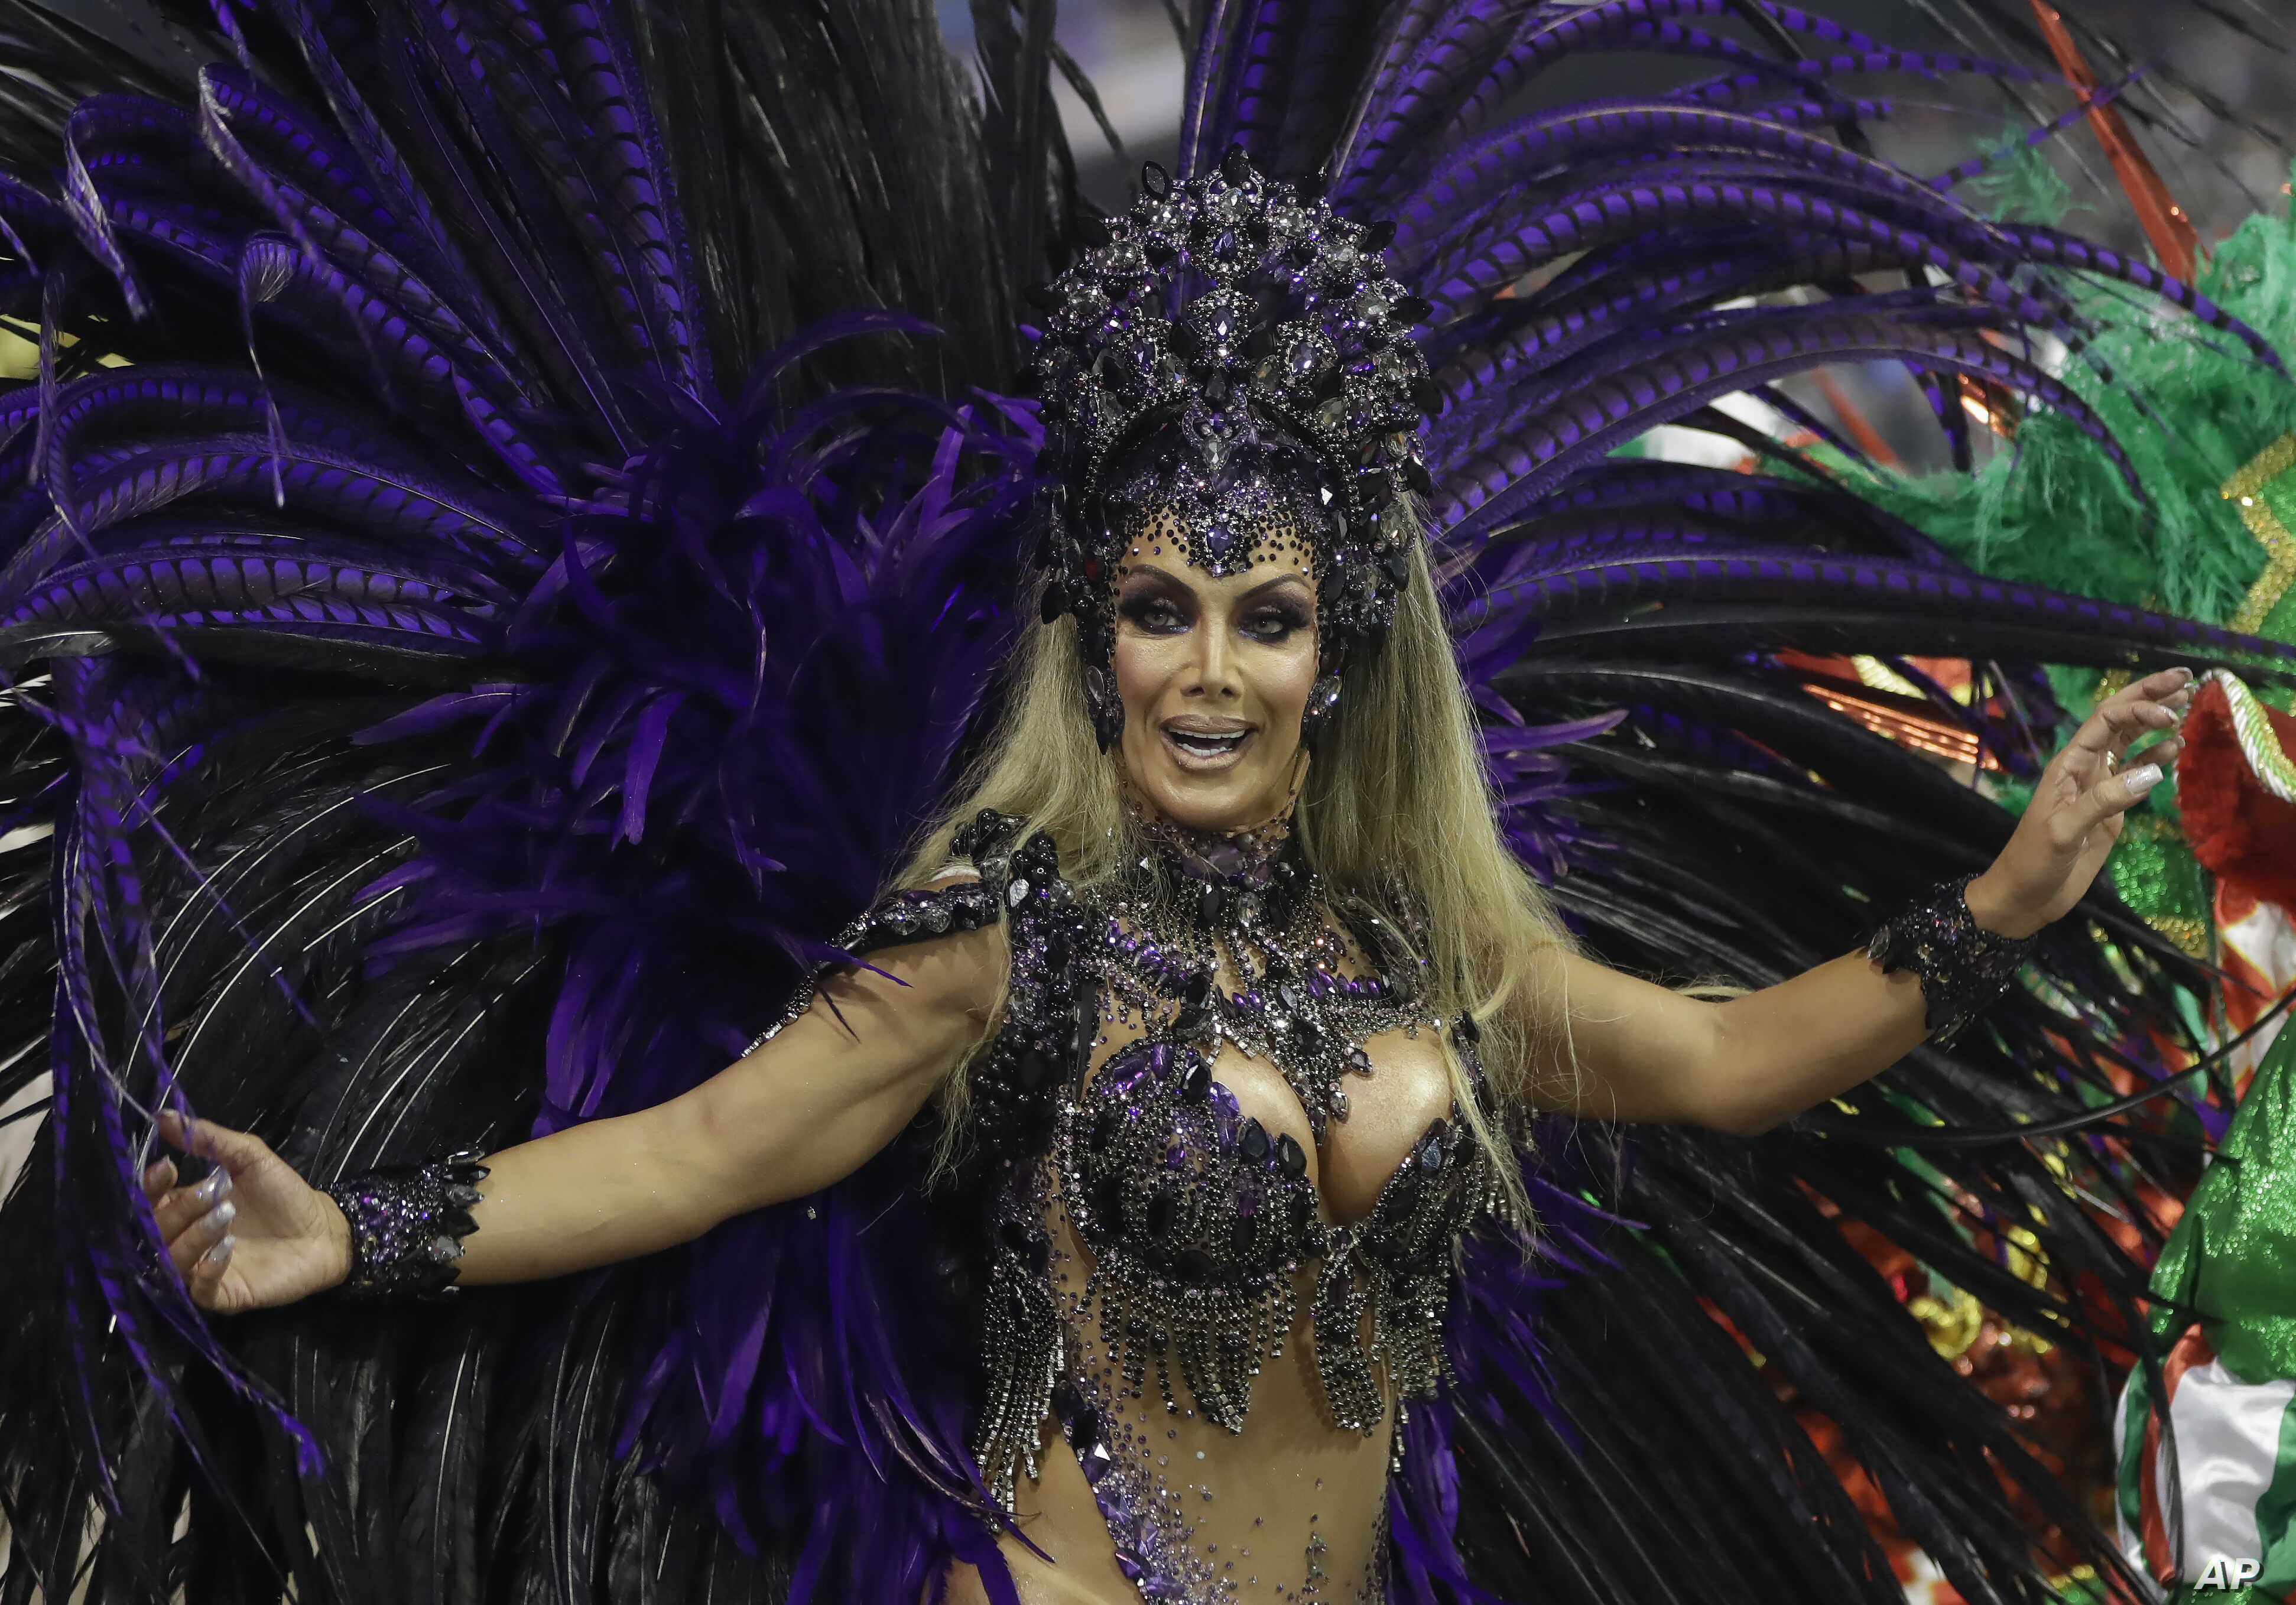 No silicone wanted! Carnival troupe pushes for more